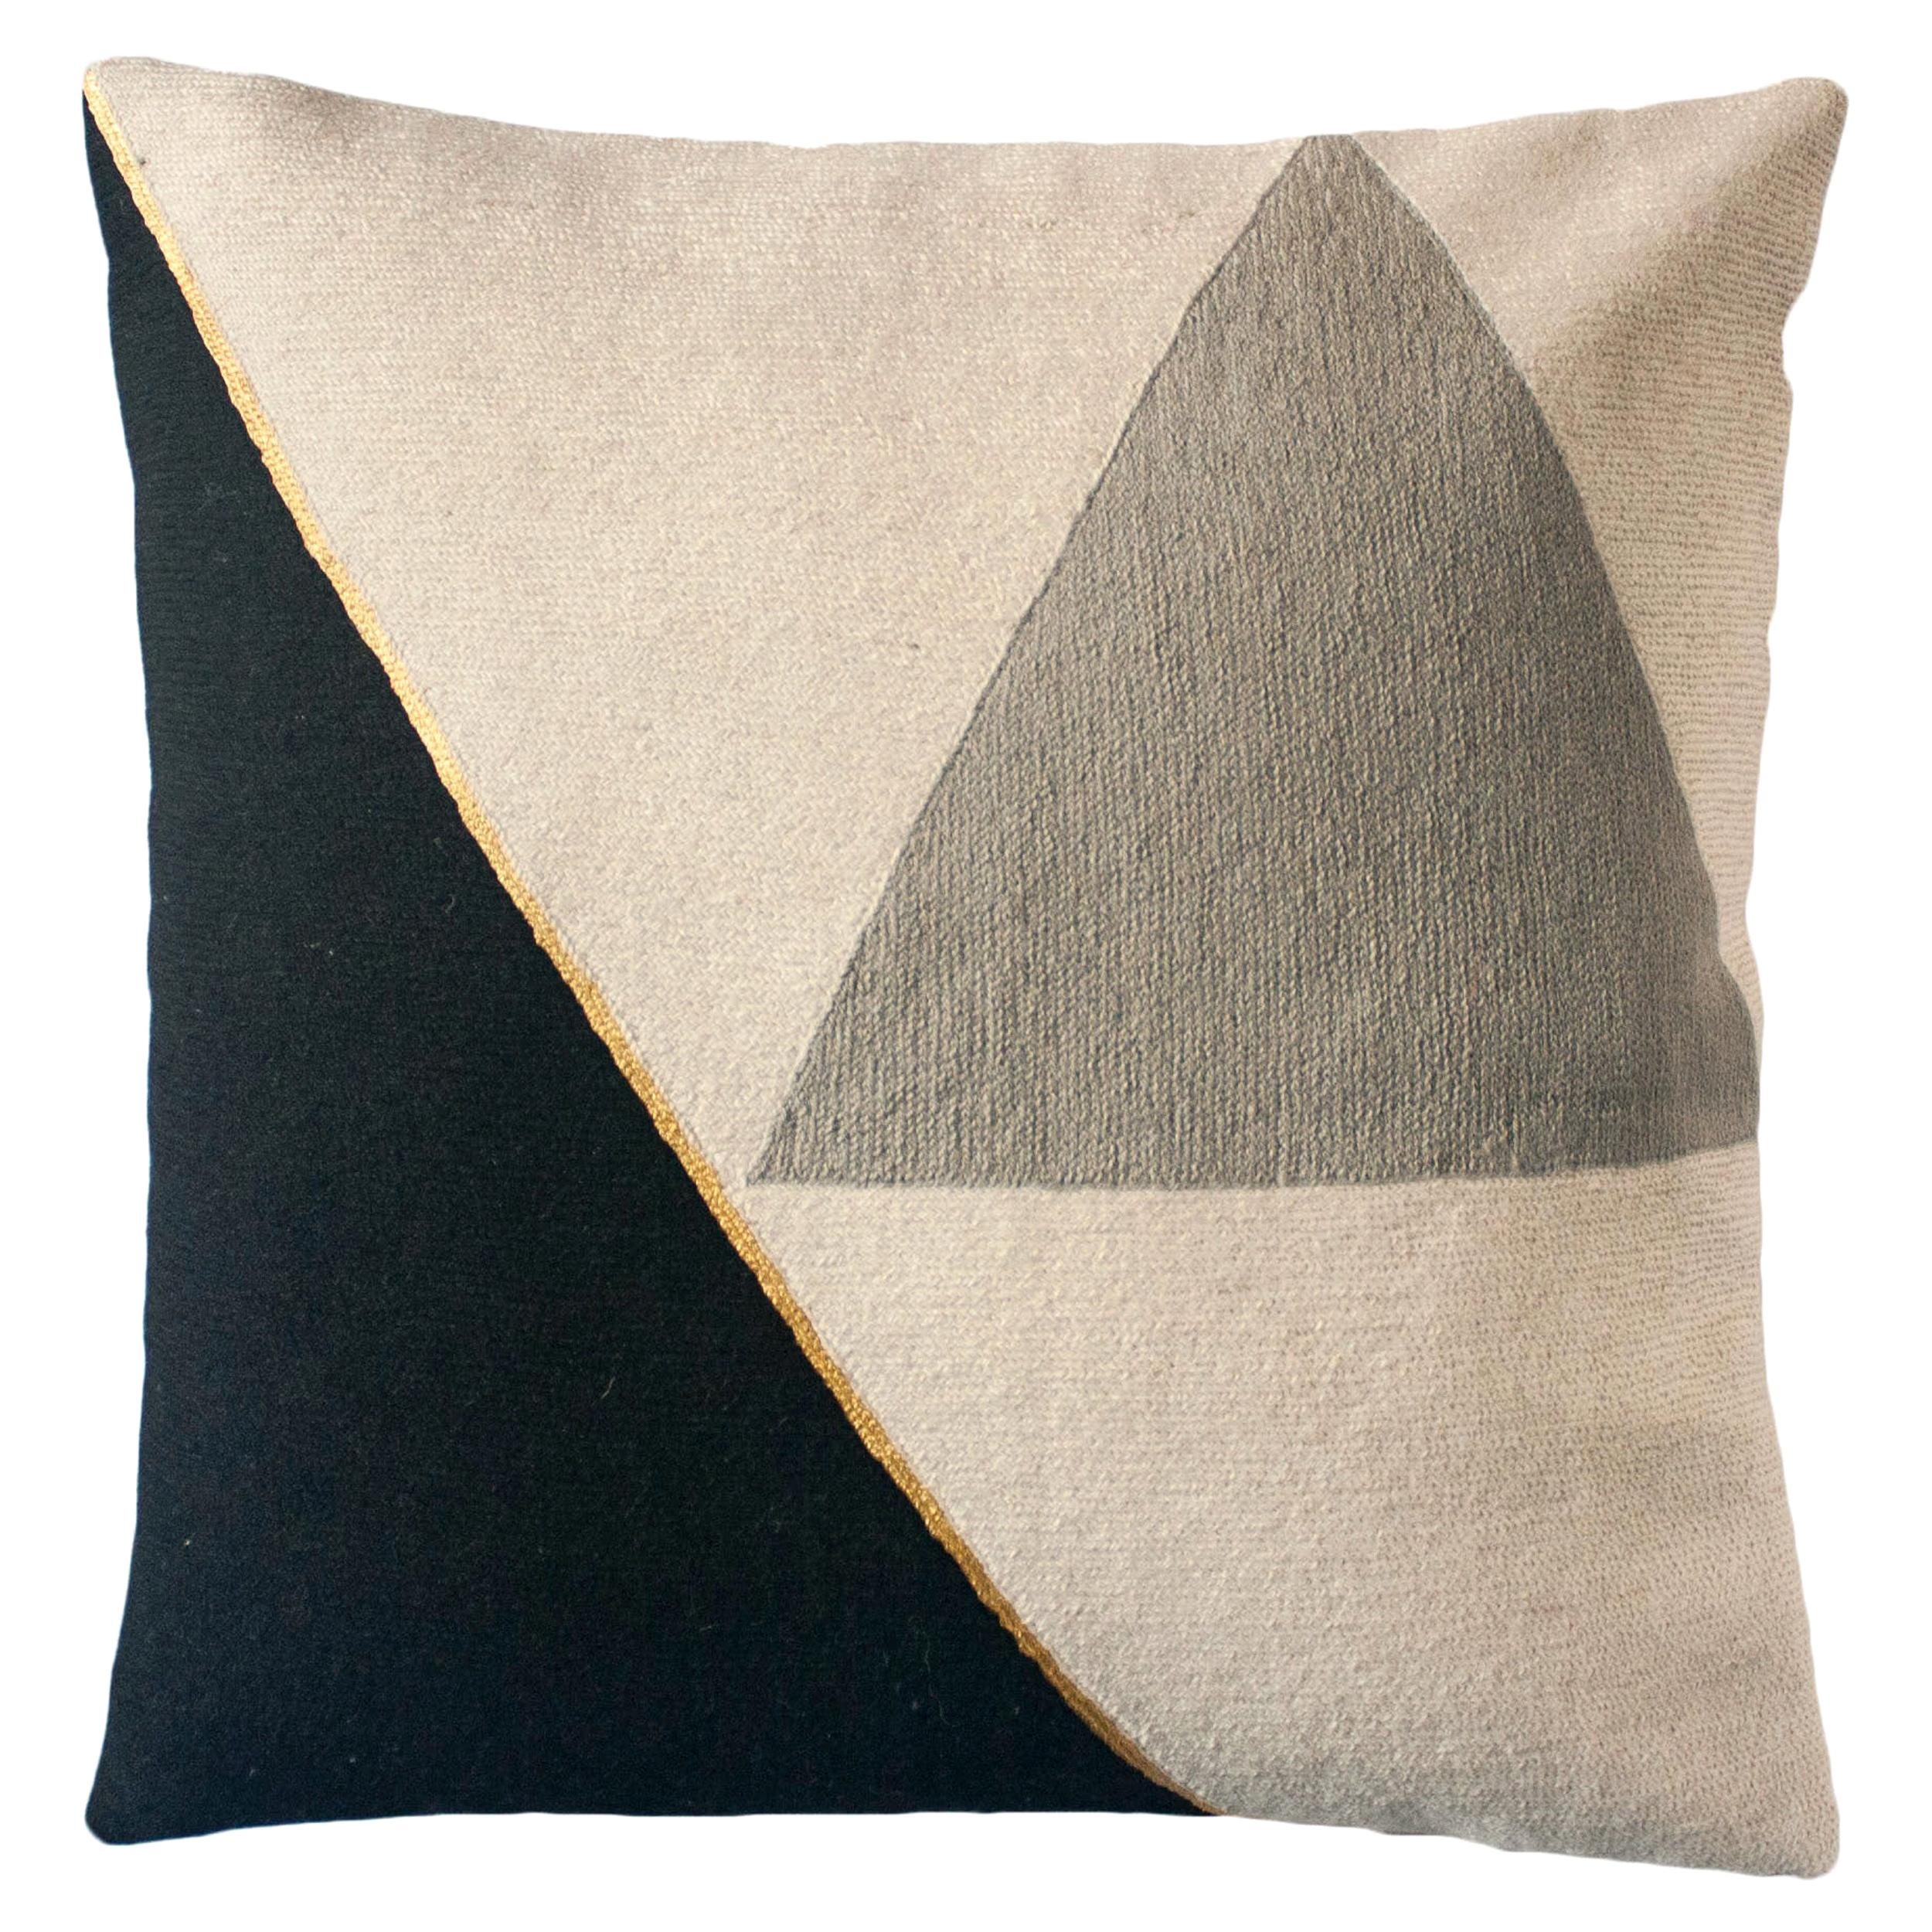 Modern Midnight Cliff Hand Embroidered Geometric Throw Pillow Cover